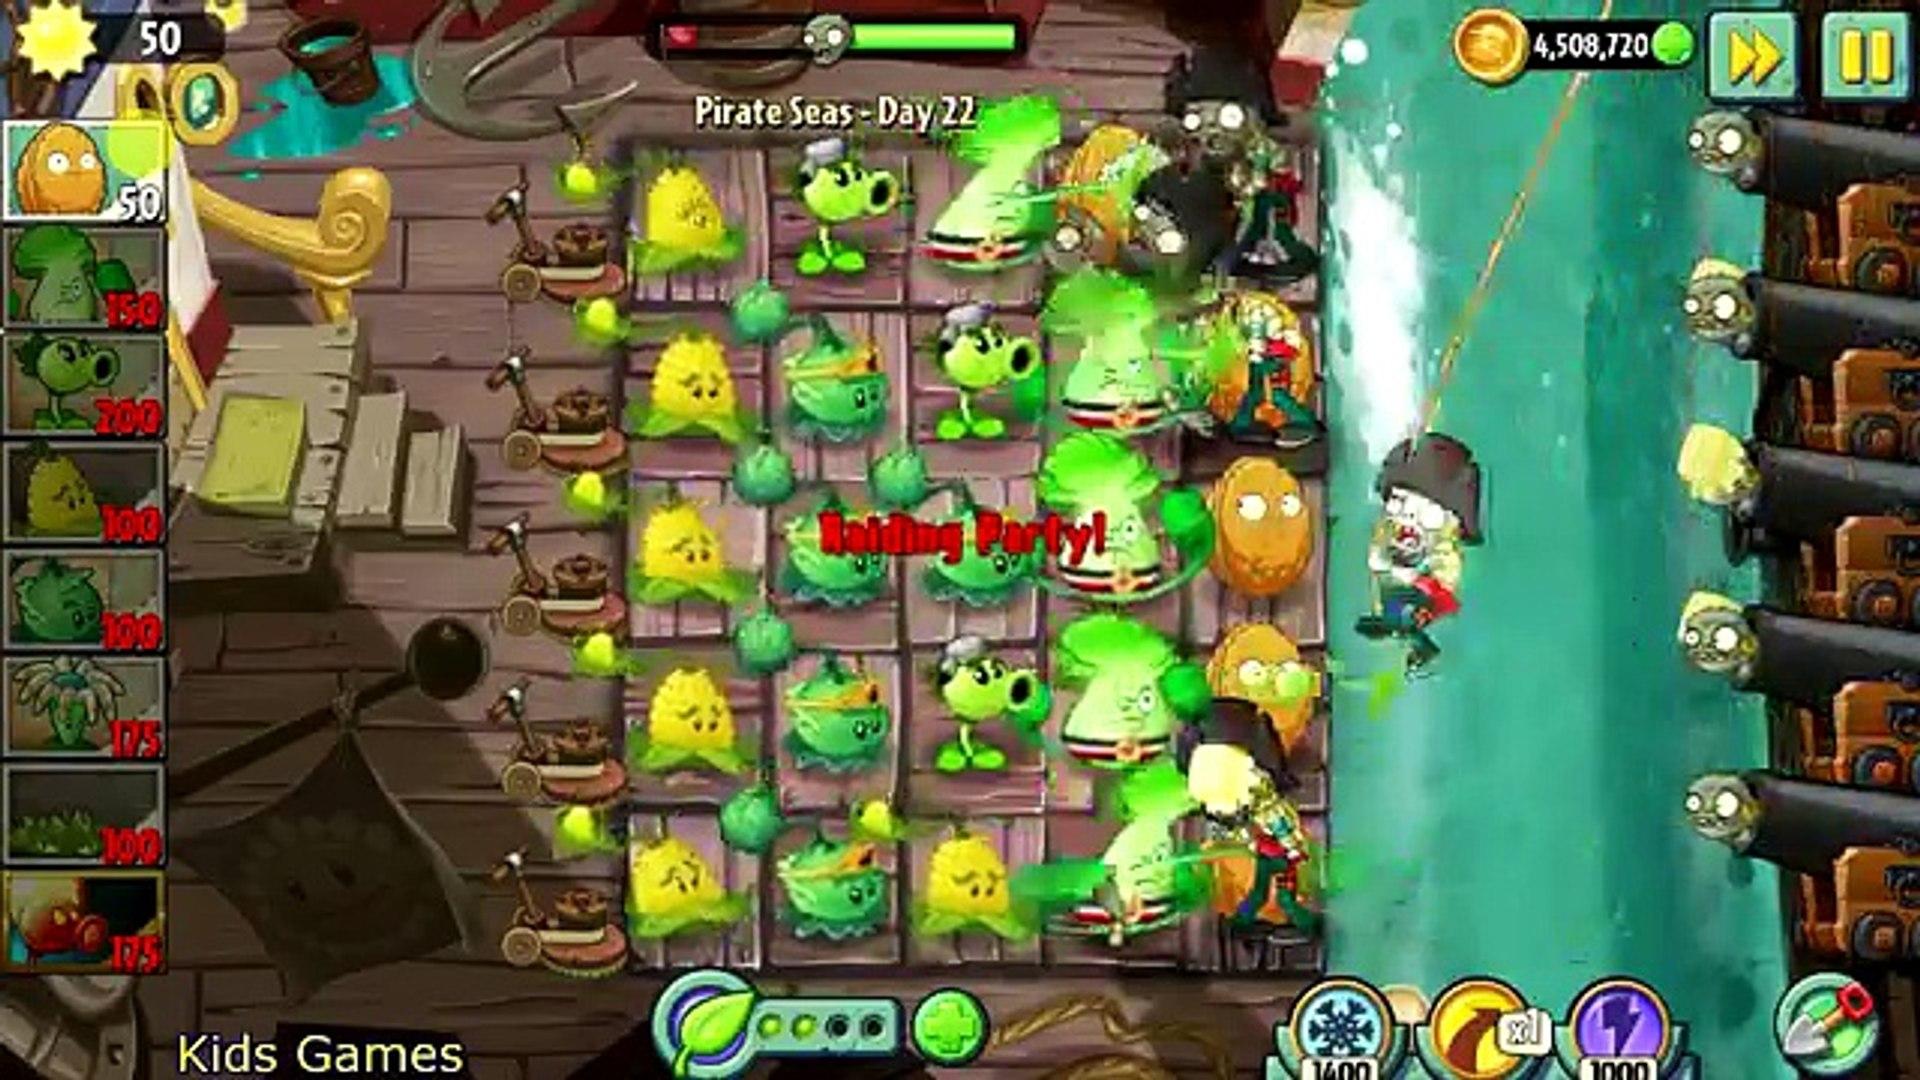 Plants vs. Zombies 2: Its About Time Pirate Seas Gameplay Part 7 Final Boss Zombot Plank Walker